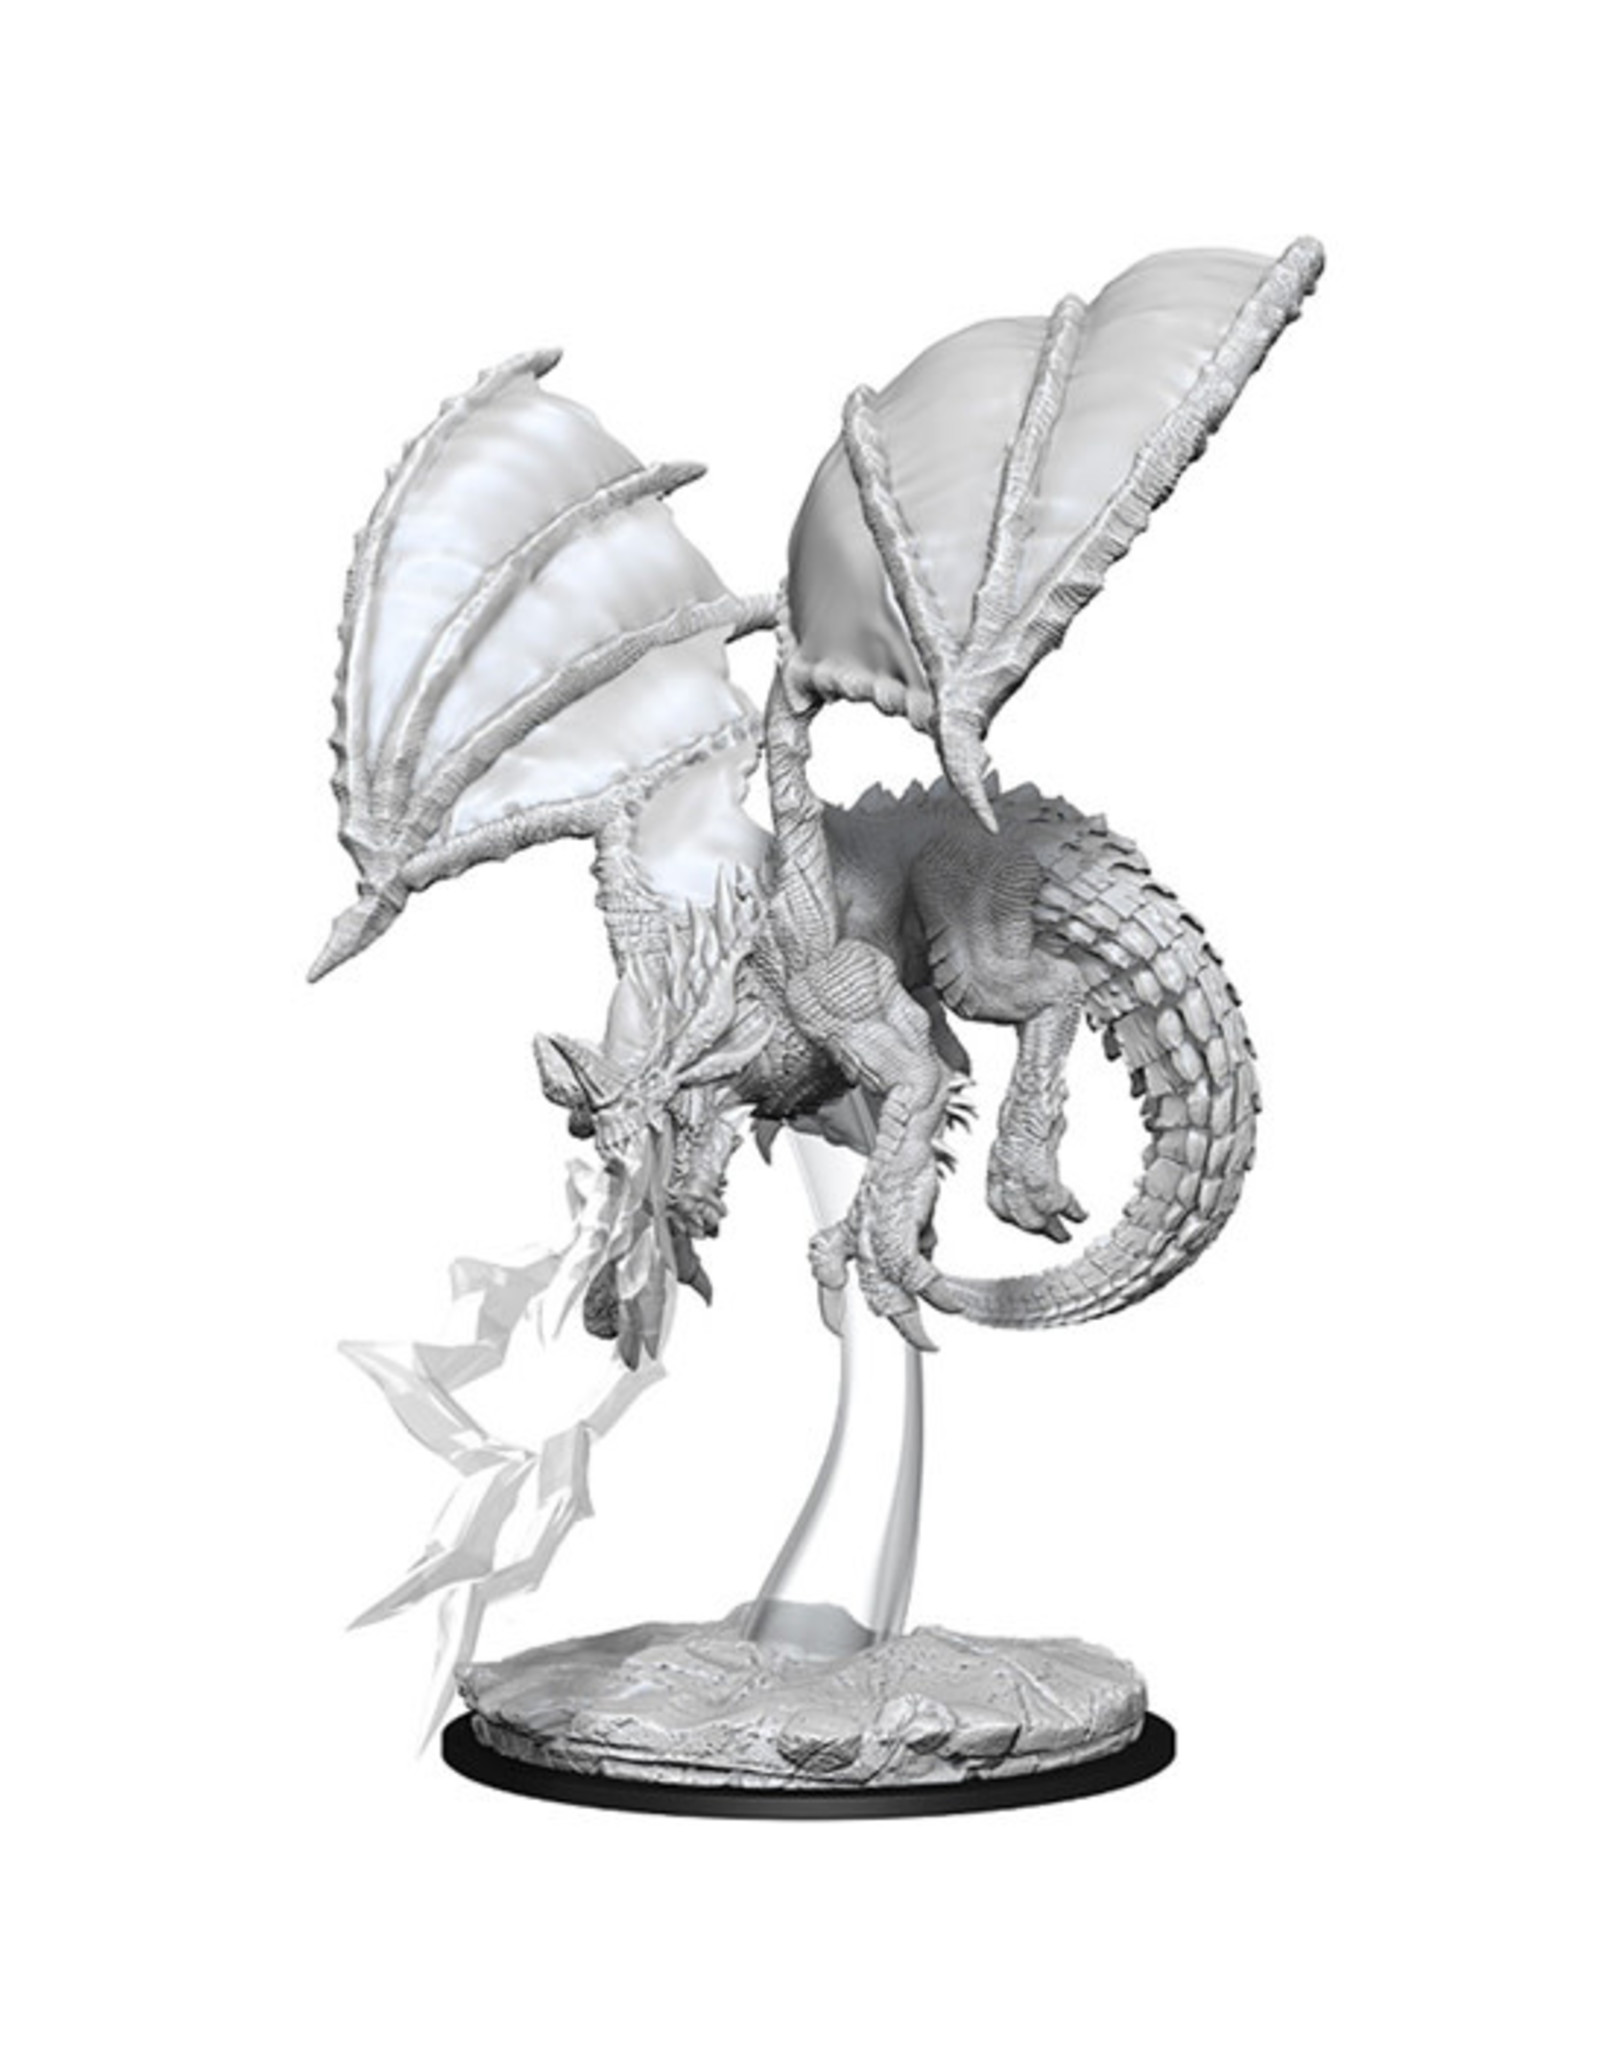 Dungeons & Dragons Dungeons & Dragons: Nolzur's - Young Blue Dragon